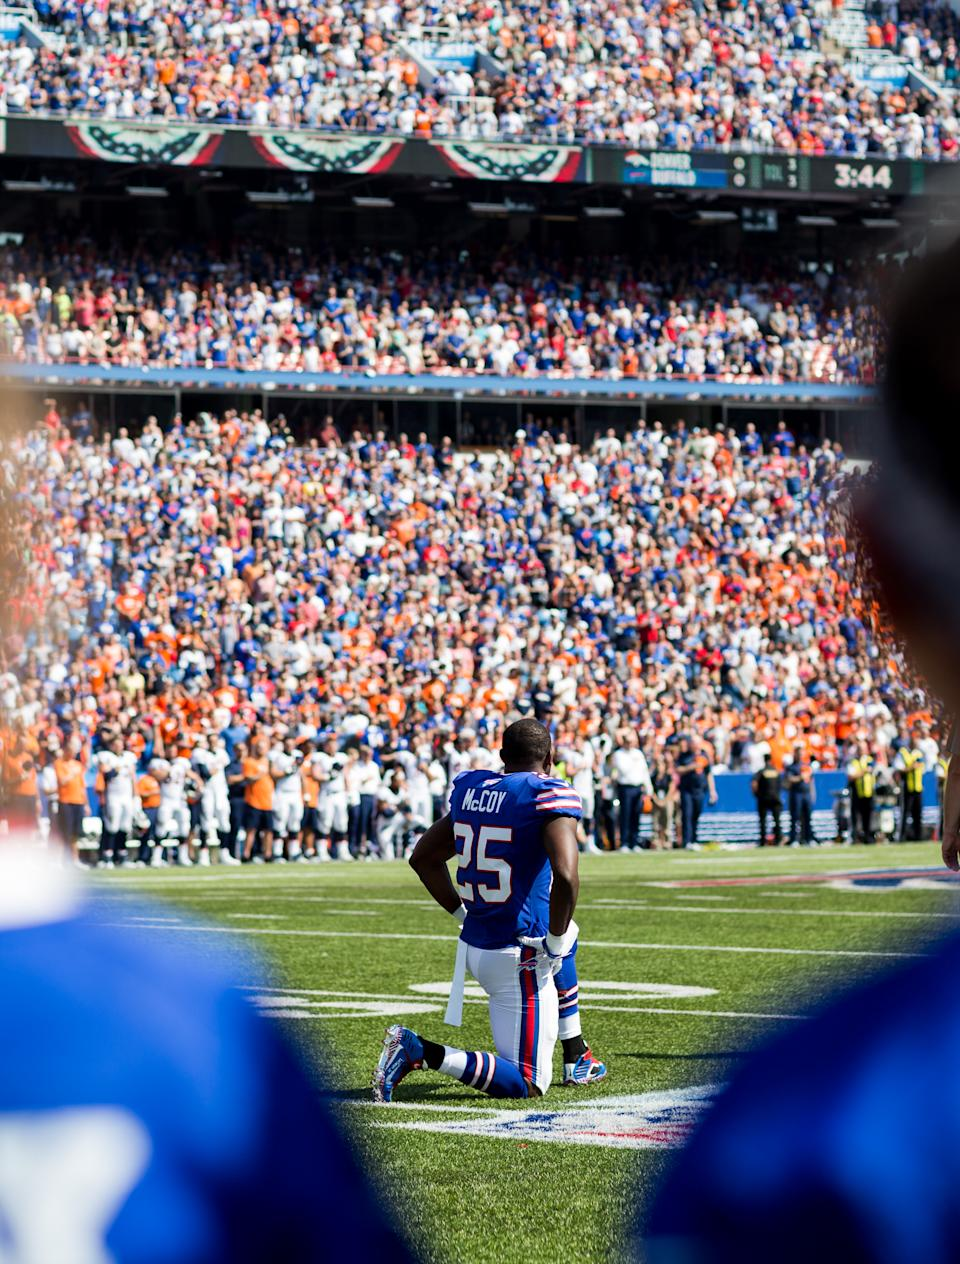 LeSean McCoy #25 of the Buffalo Bills takes a knee during the national anthem before an NFL game against the Denver Broncos on September 24, 2017 at New Era Field in Orchard Park, New York. (Photo by Bryan Bennett/Getty Images)